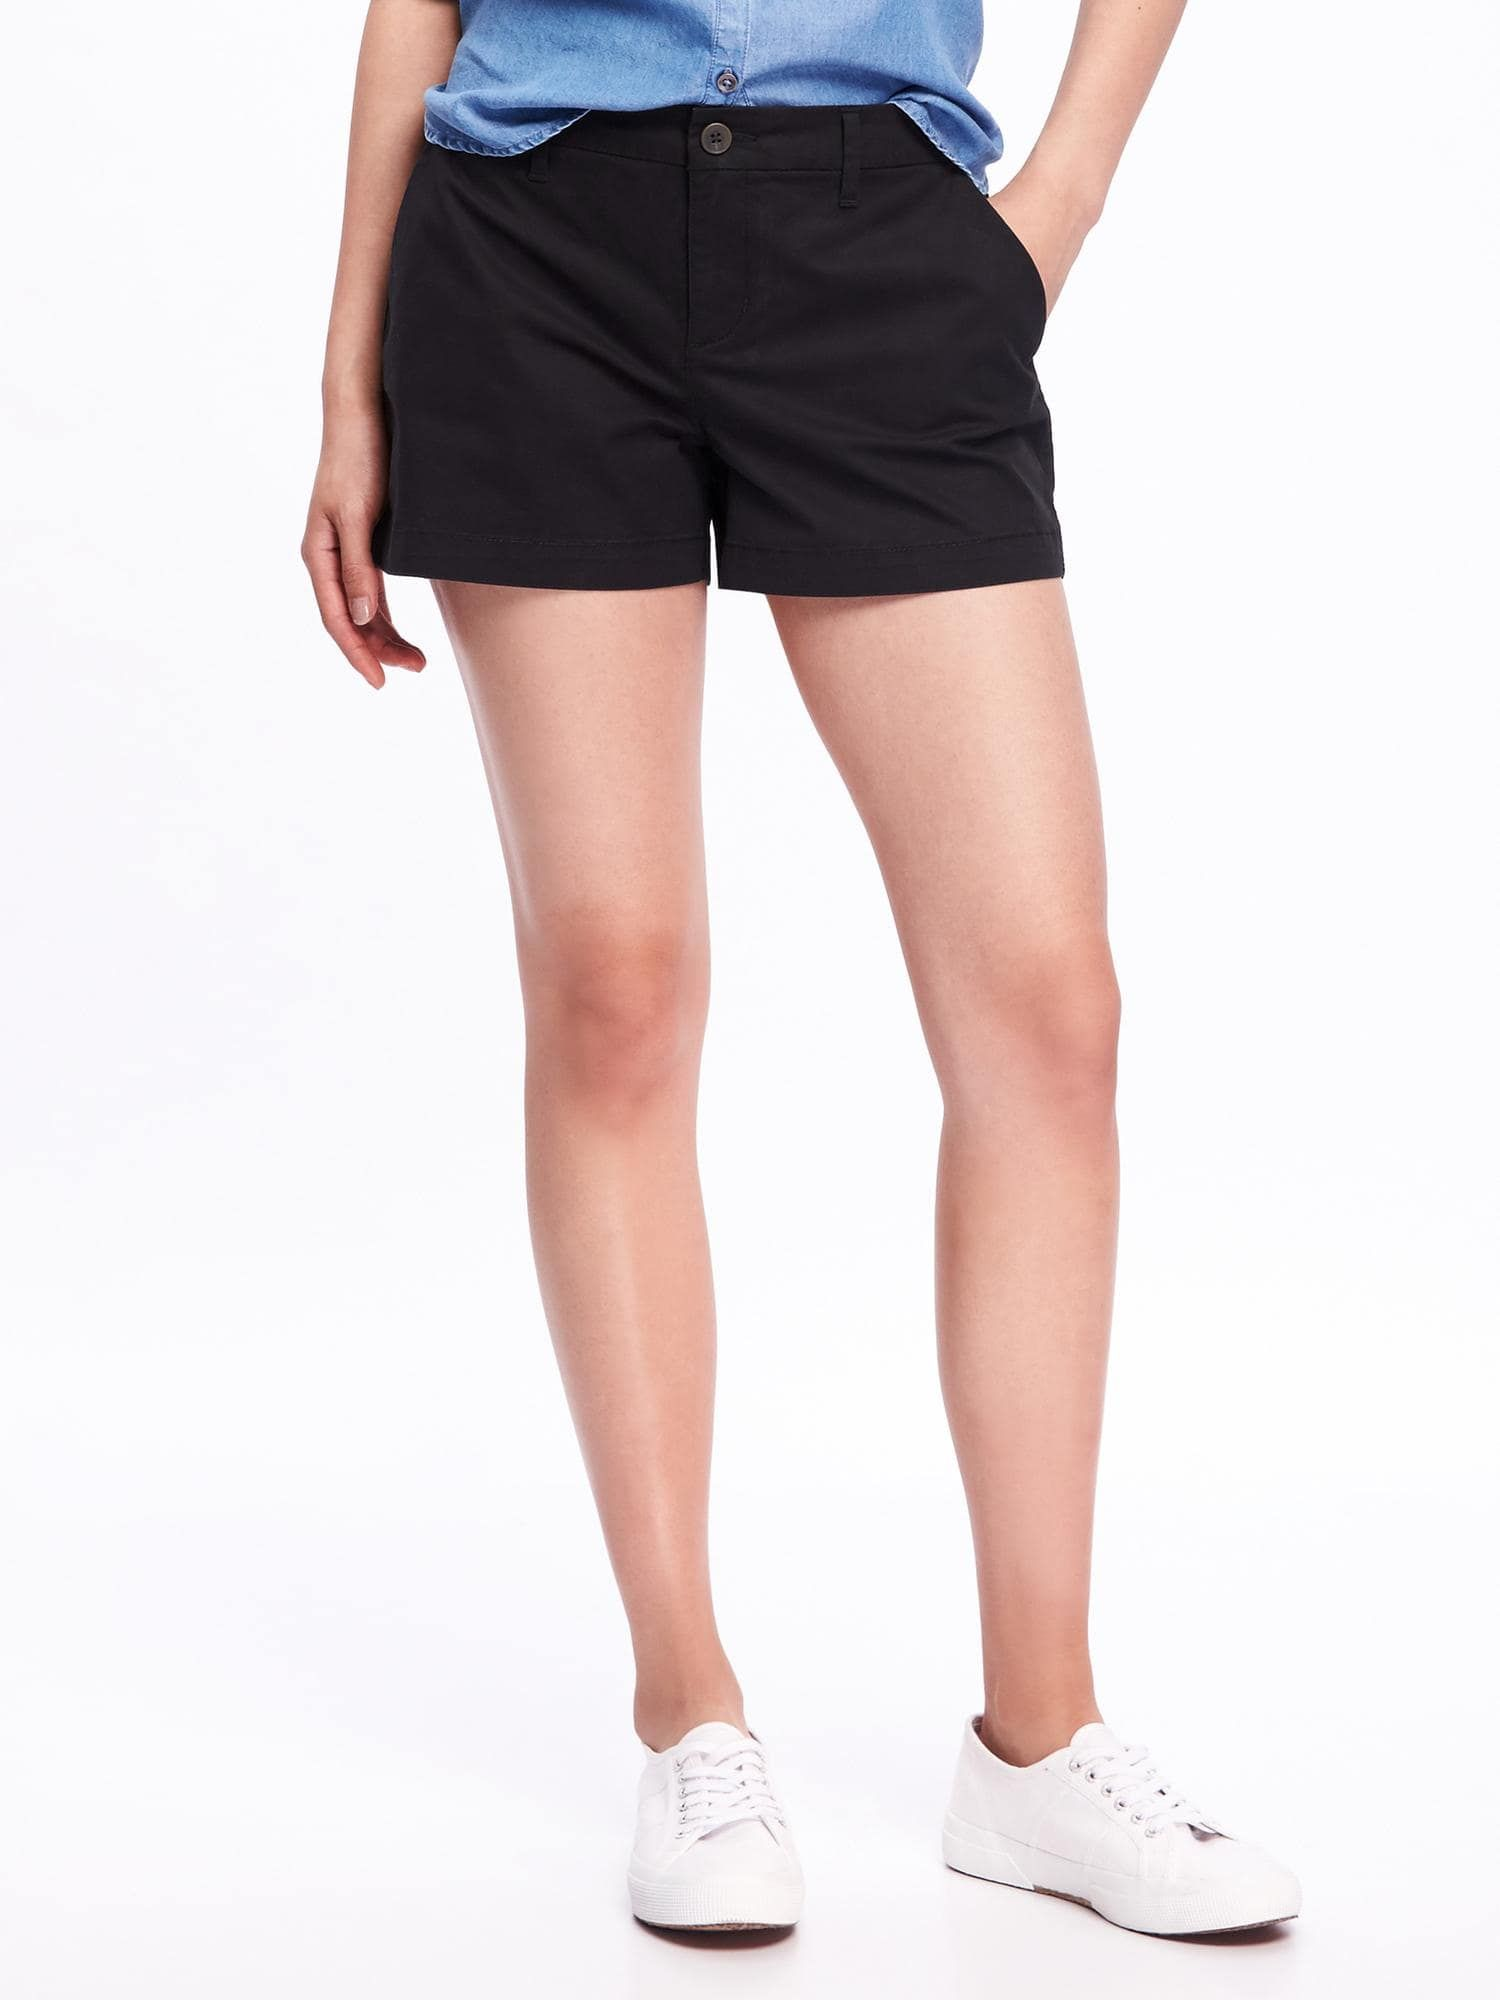 6475498cc68e4 Relaxed Mid-Rise Everyday Shorts For Women - 3.5 inch inseam ...